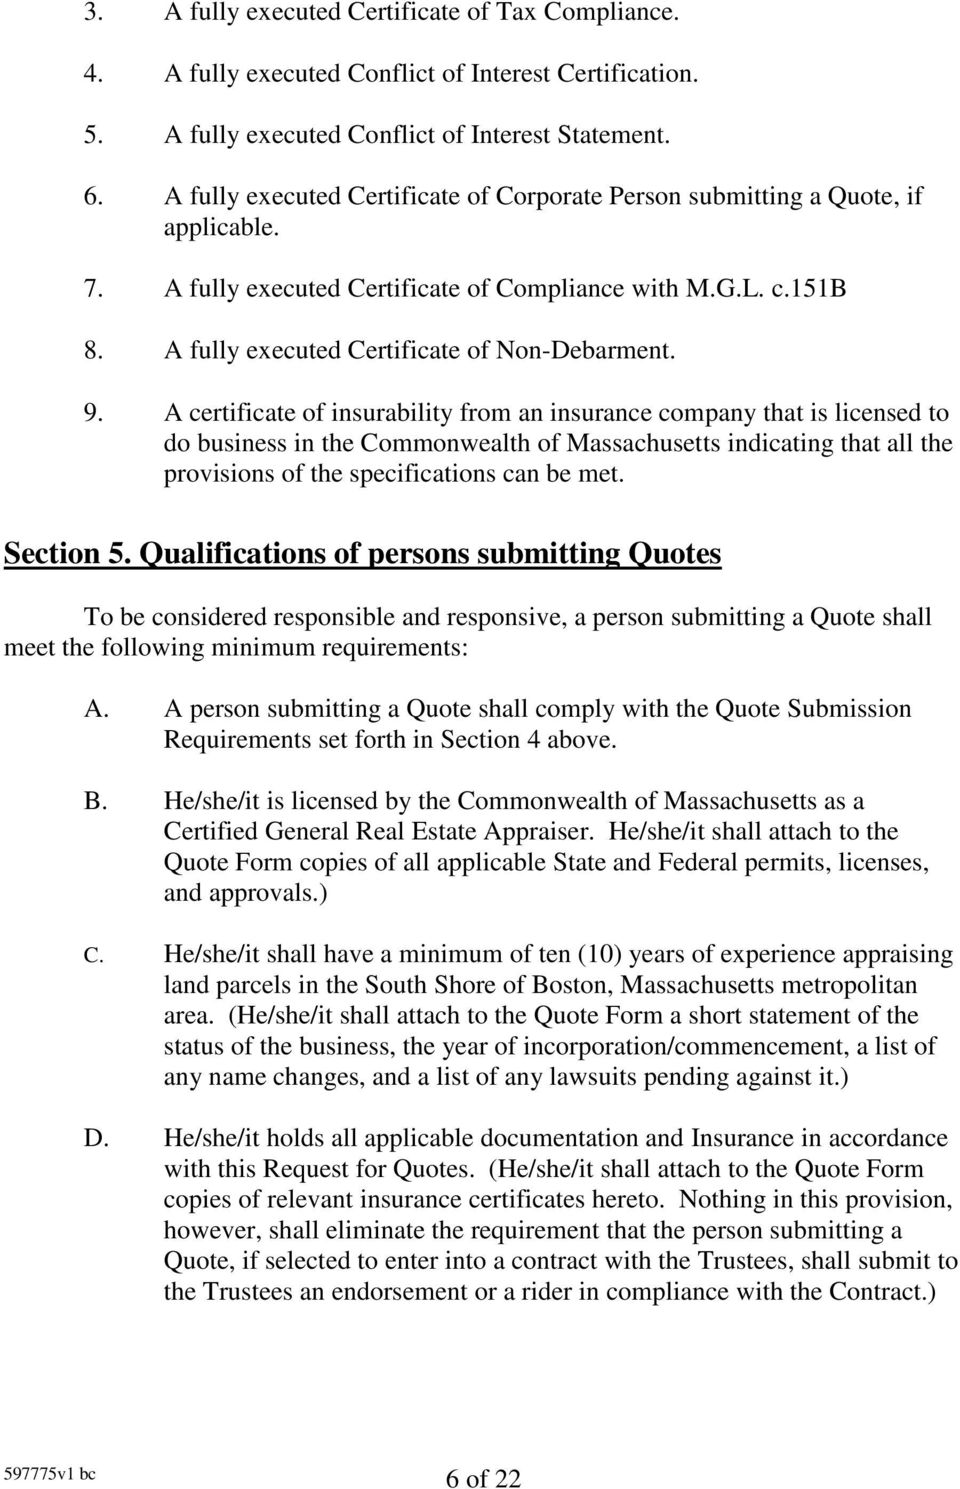 9. A certificate of insurability from an insurance company that is licensed to do business in the Commonwealth of Massachusetts indicating that all the provisions of the specifications can be met.